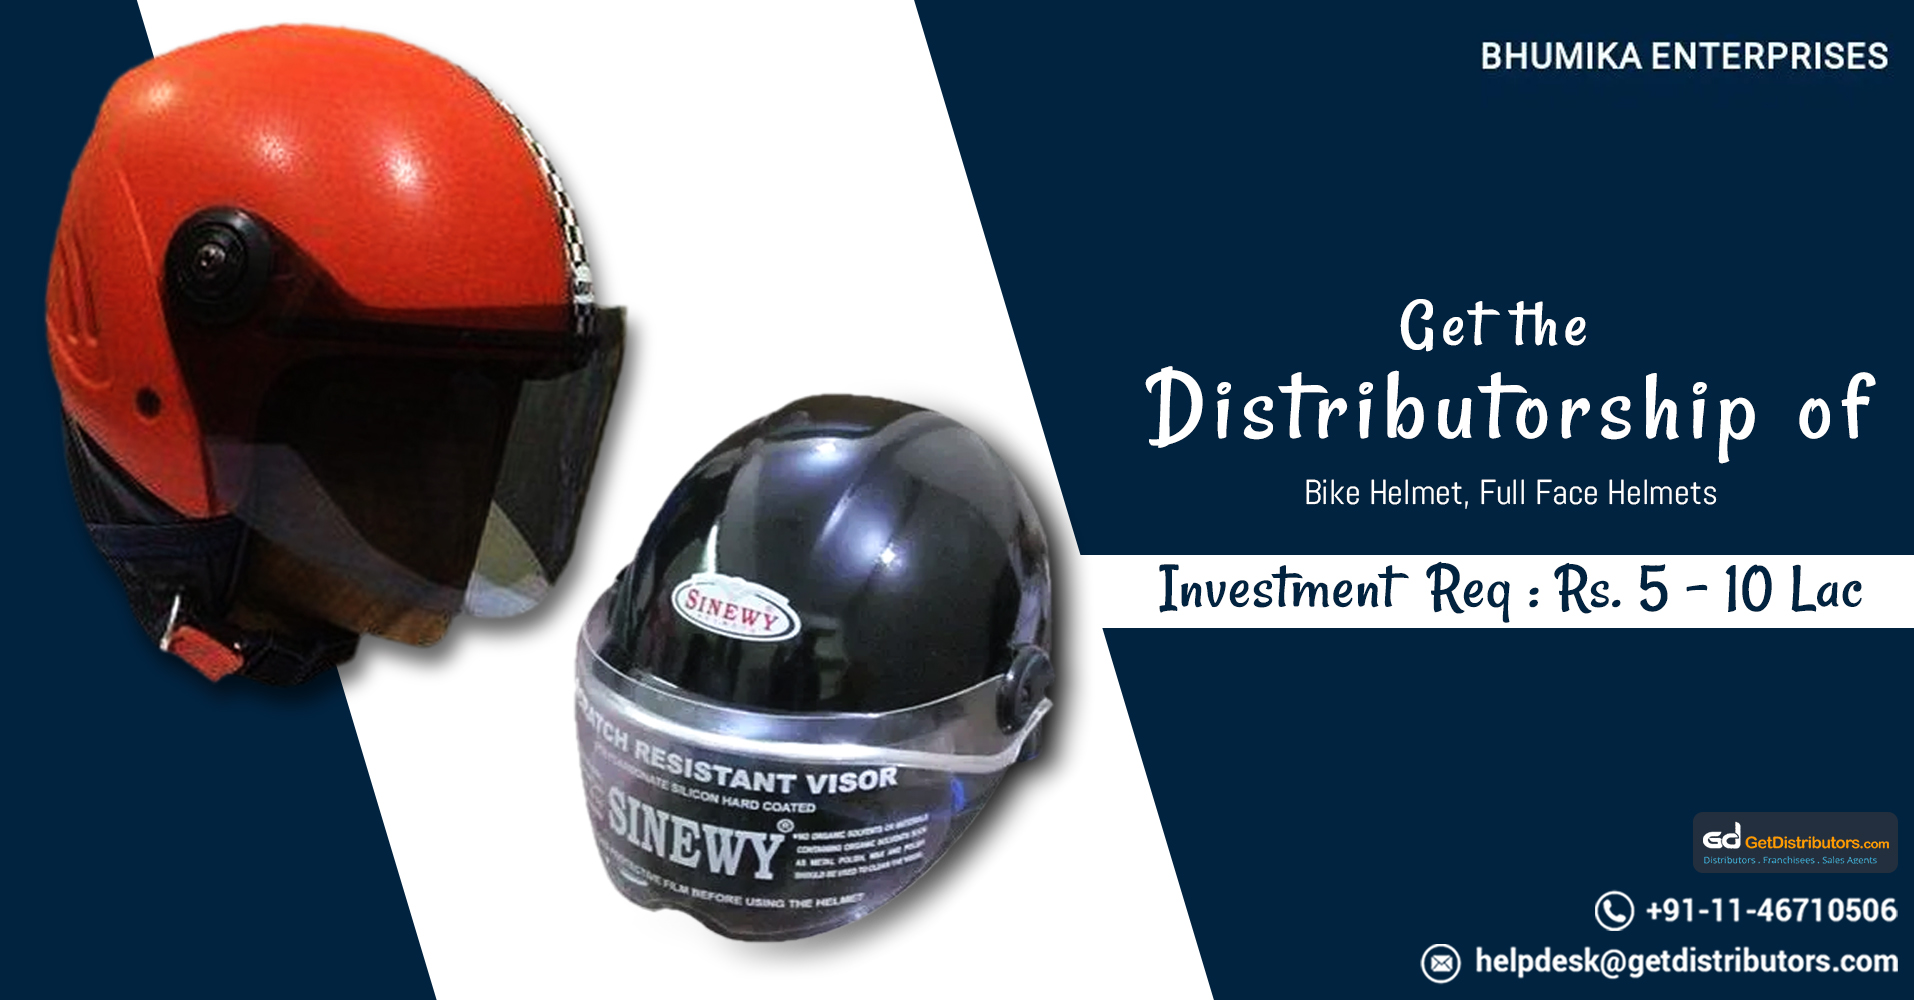 Introducing A Premium Grade Range Of Helmets